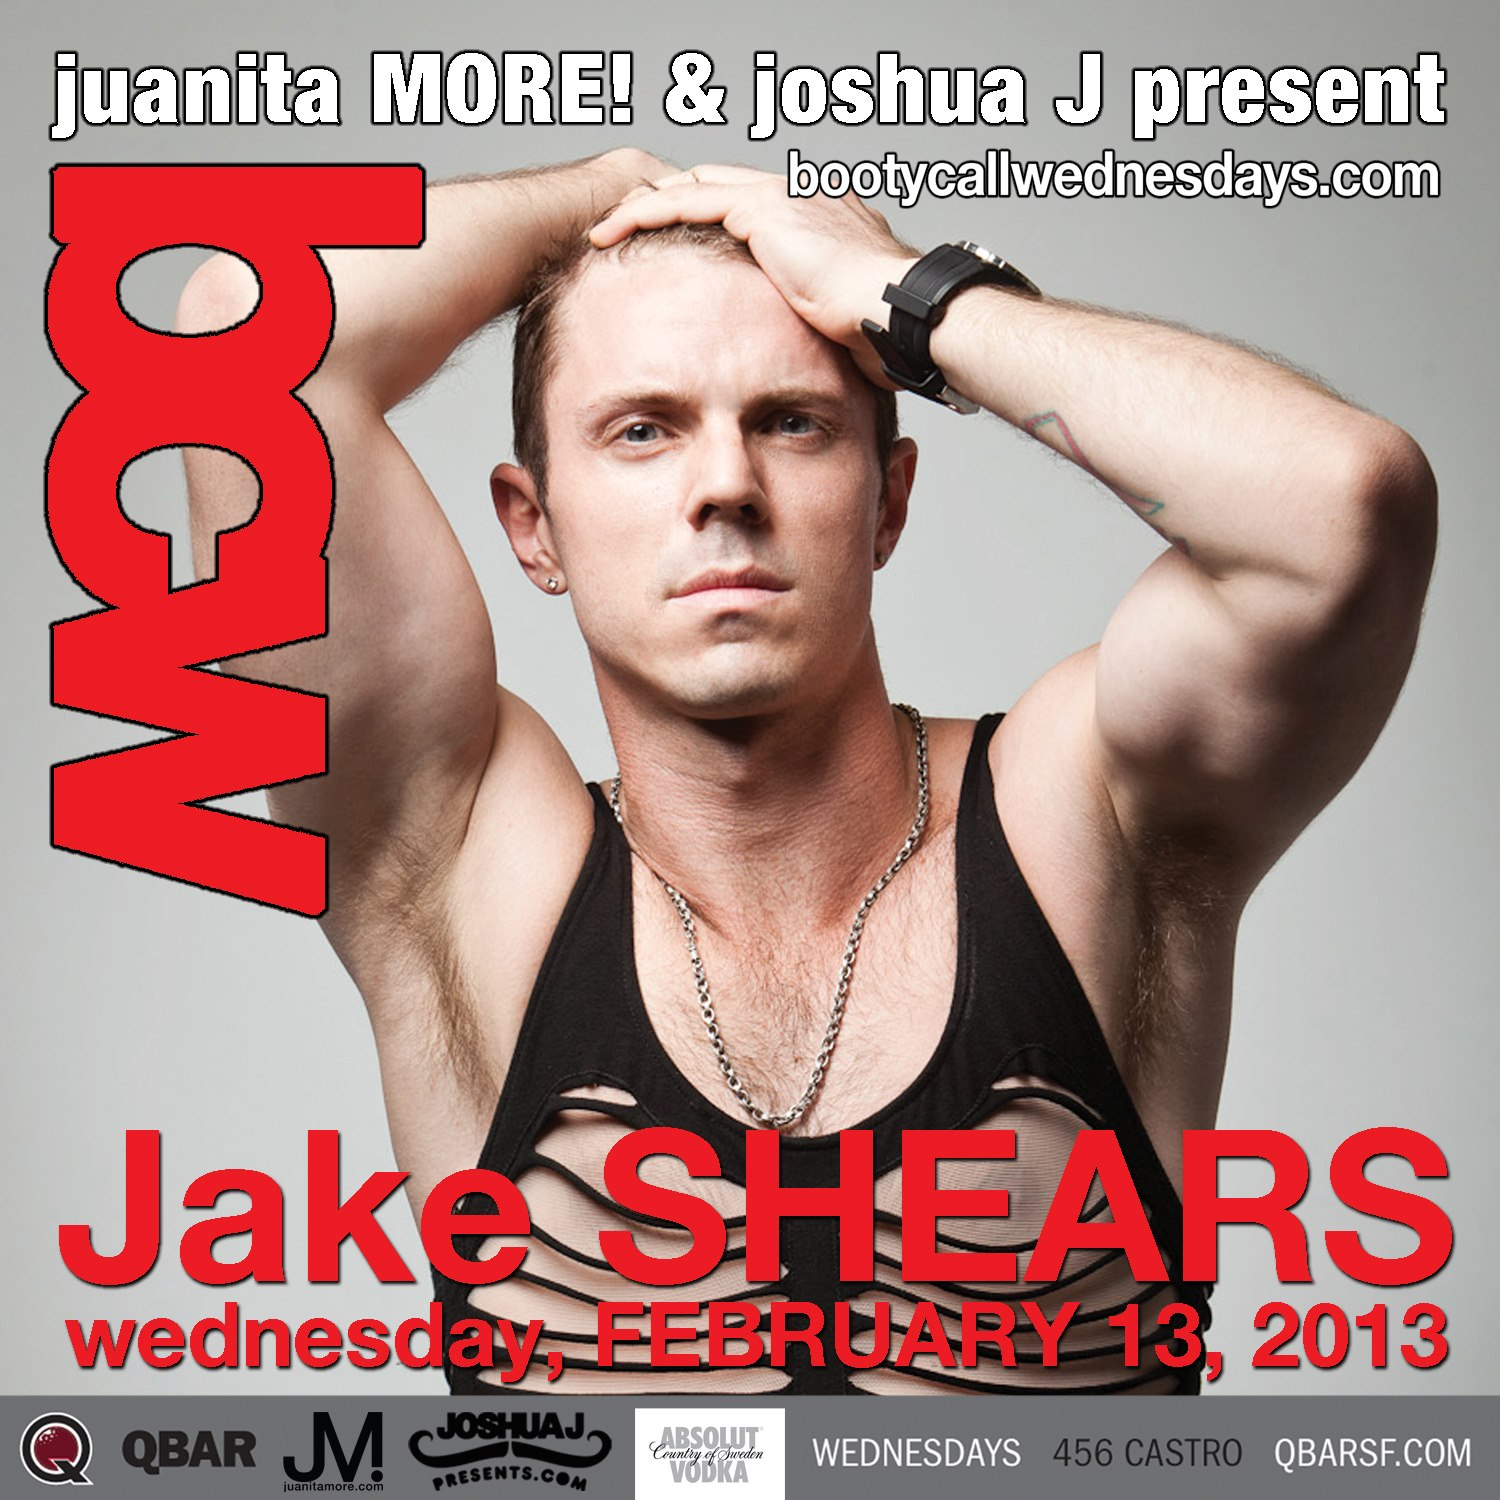 Jake shears booty call wednesdays